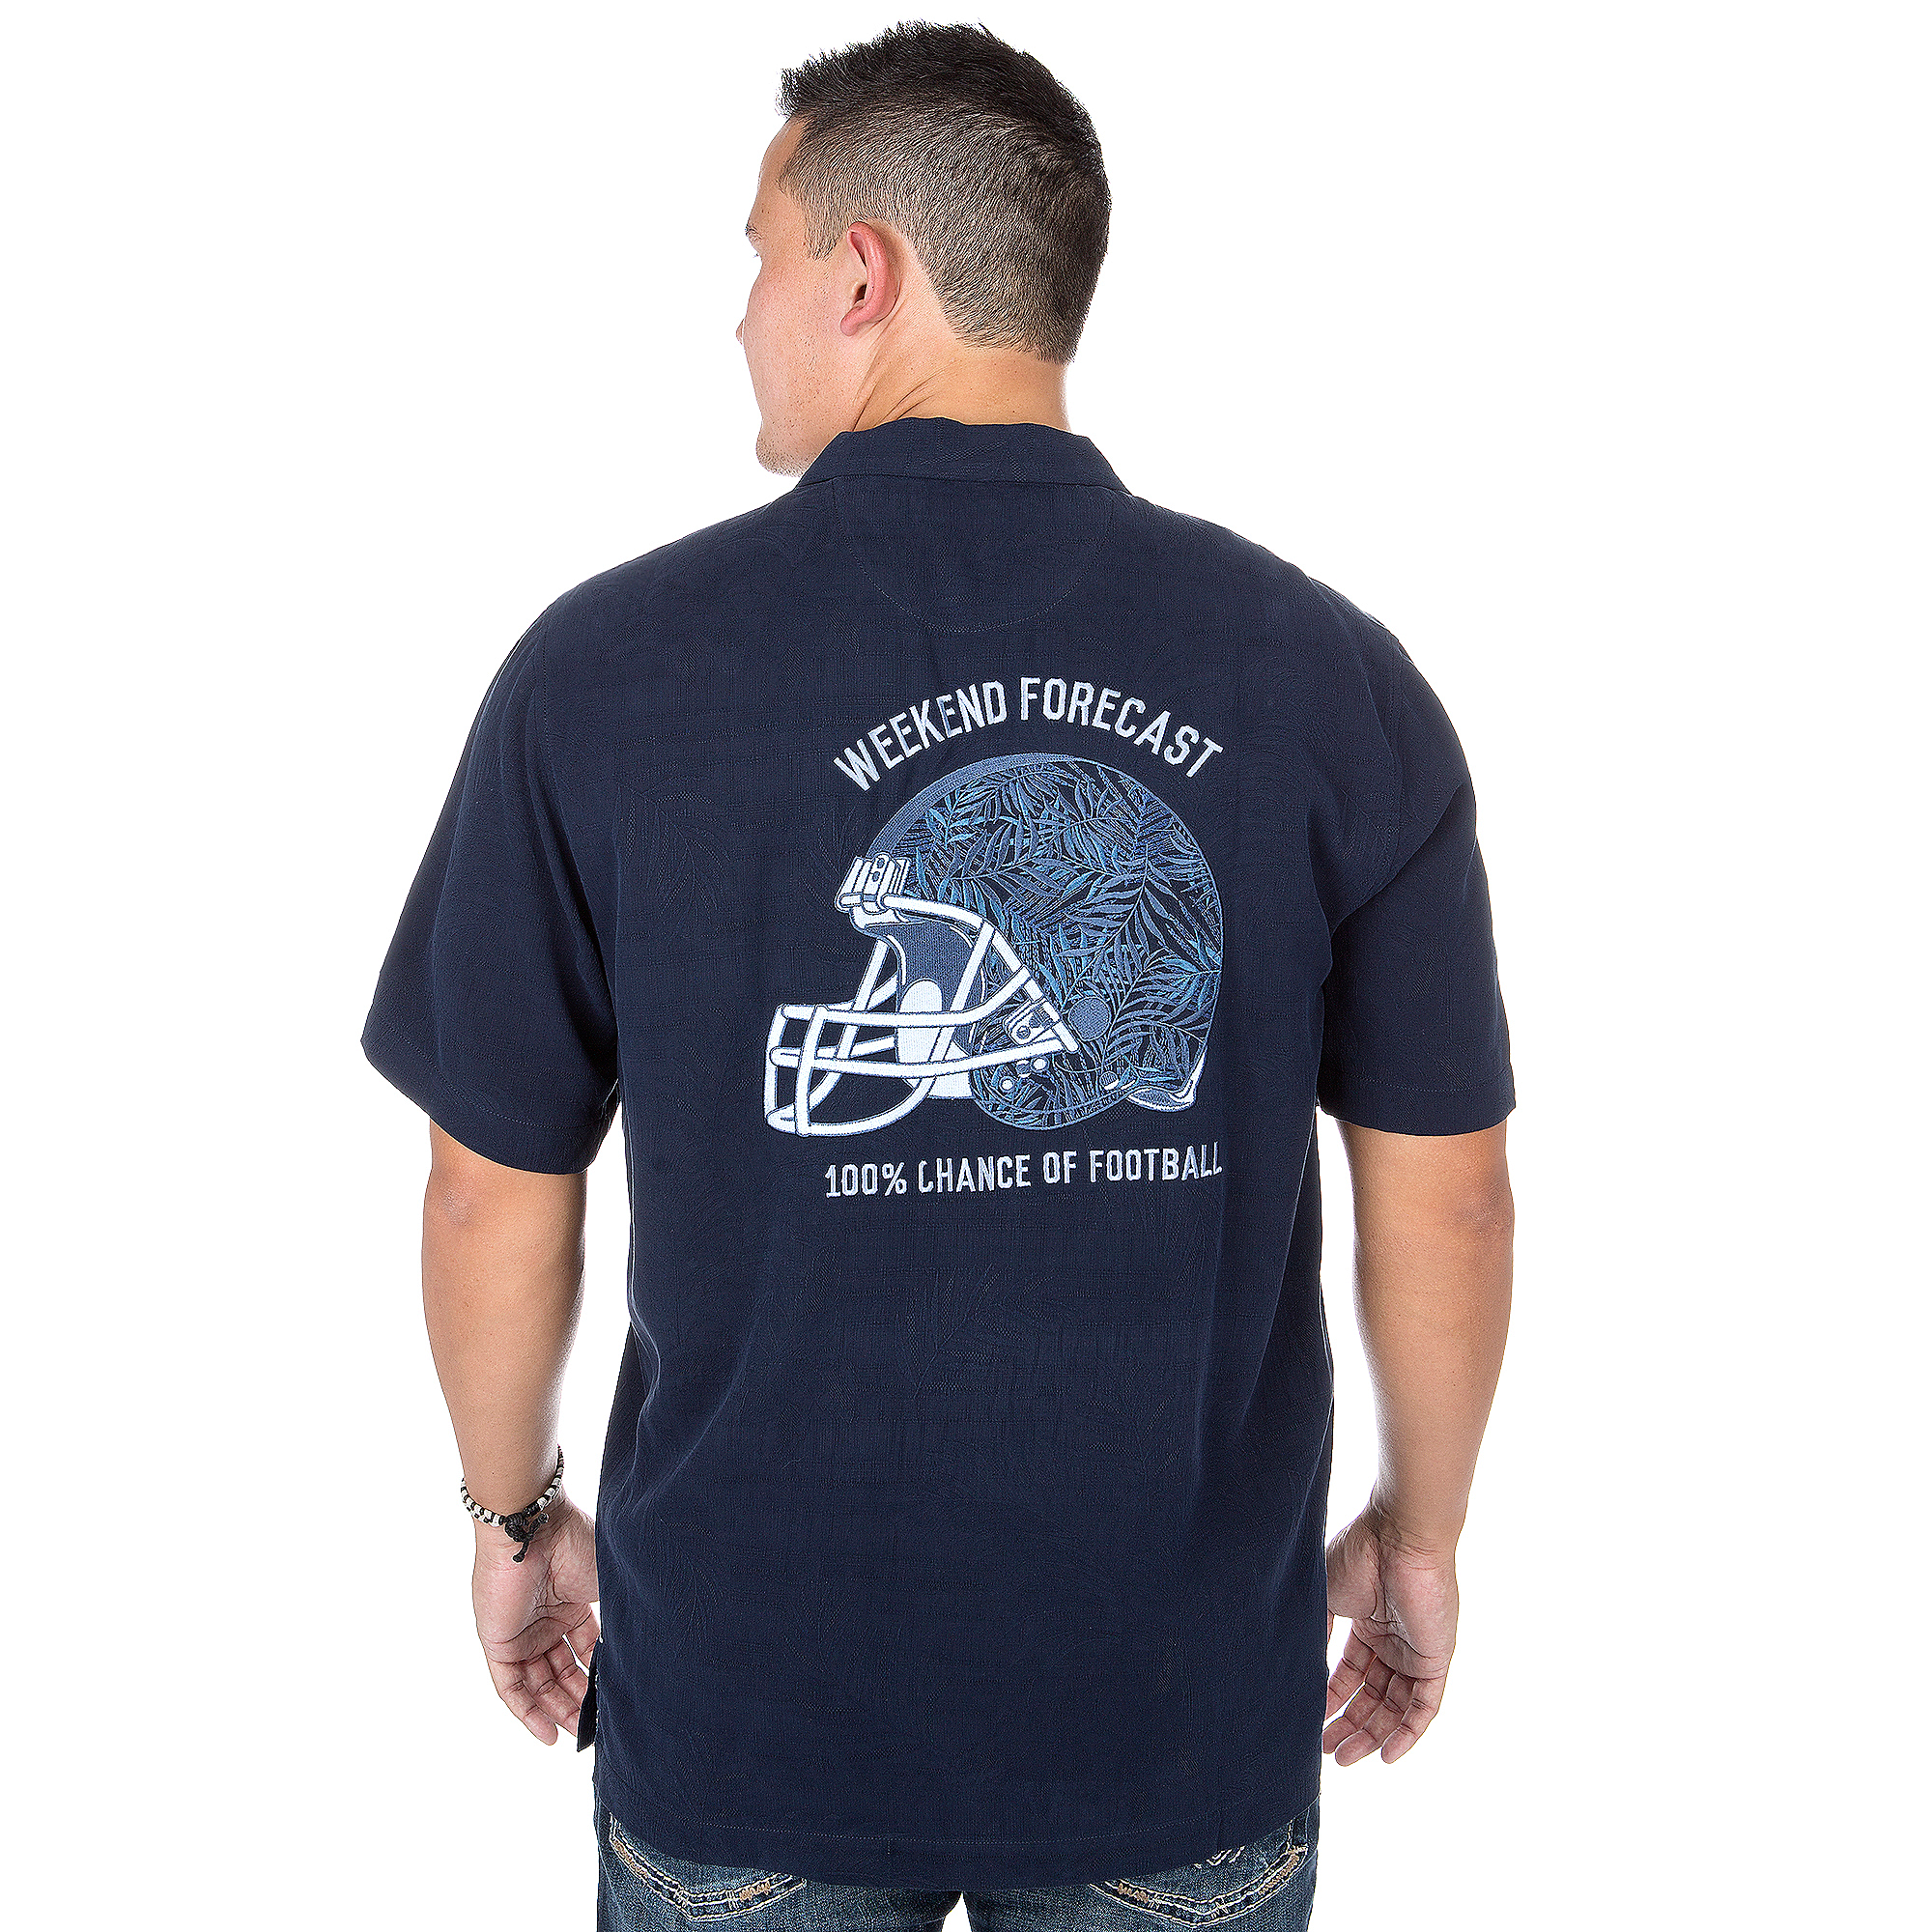 Dallas Cowboys Tommy Bahama Weekend Forecast Tee